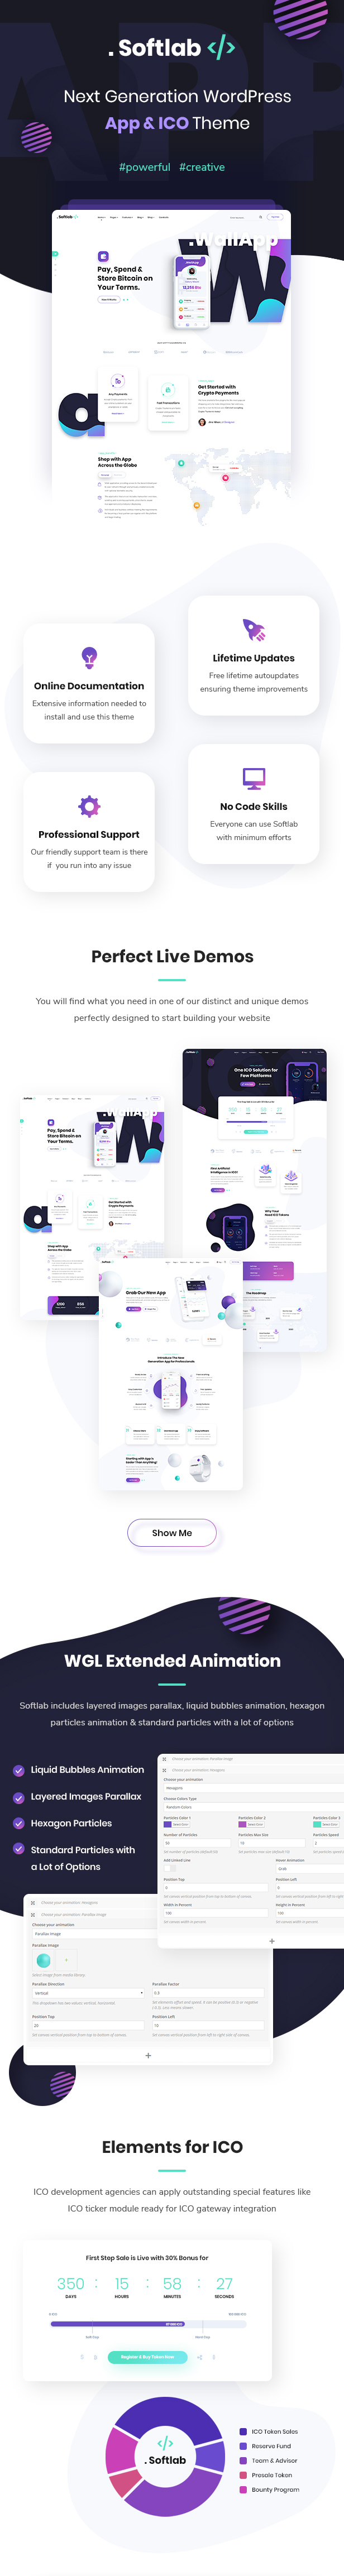 Softlab - Startup and App WordPress Theme - 2